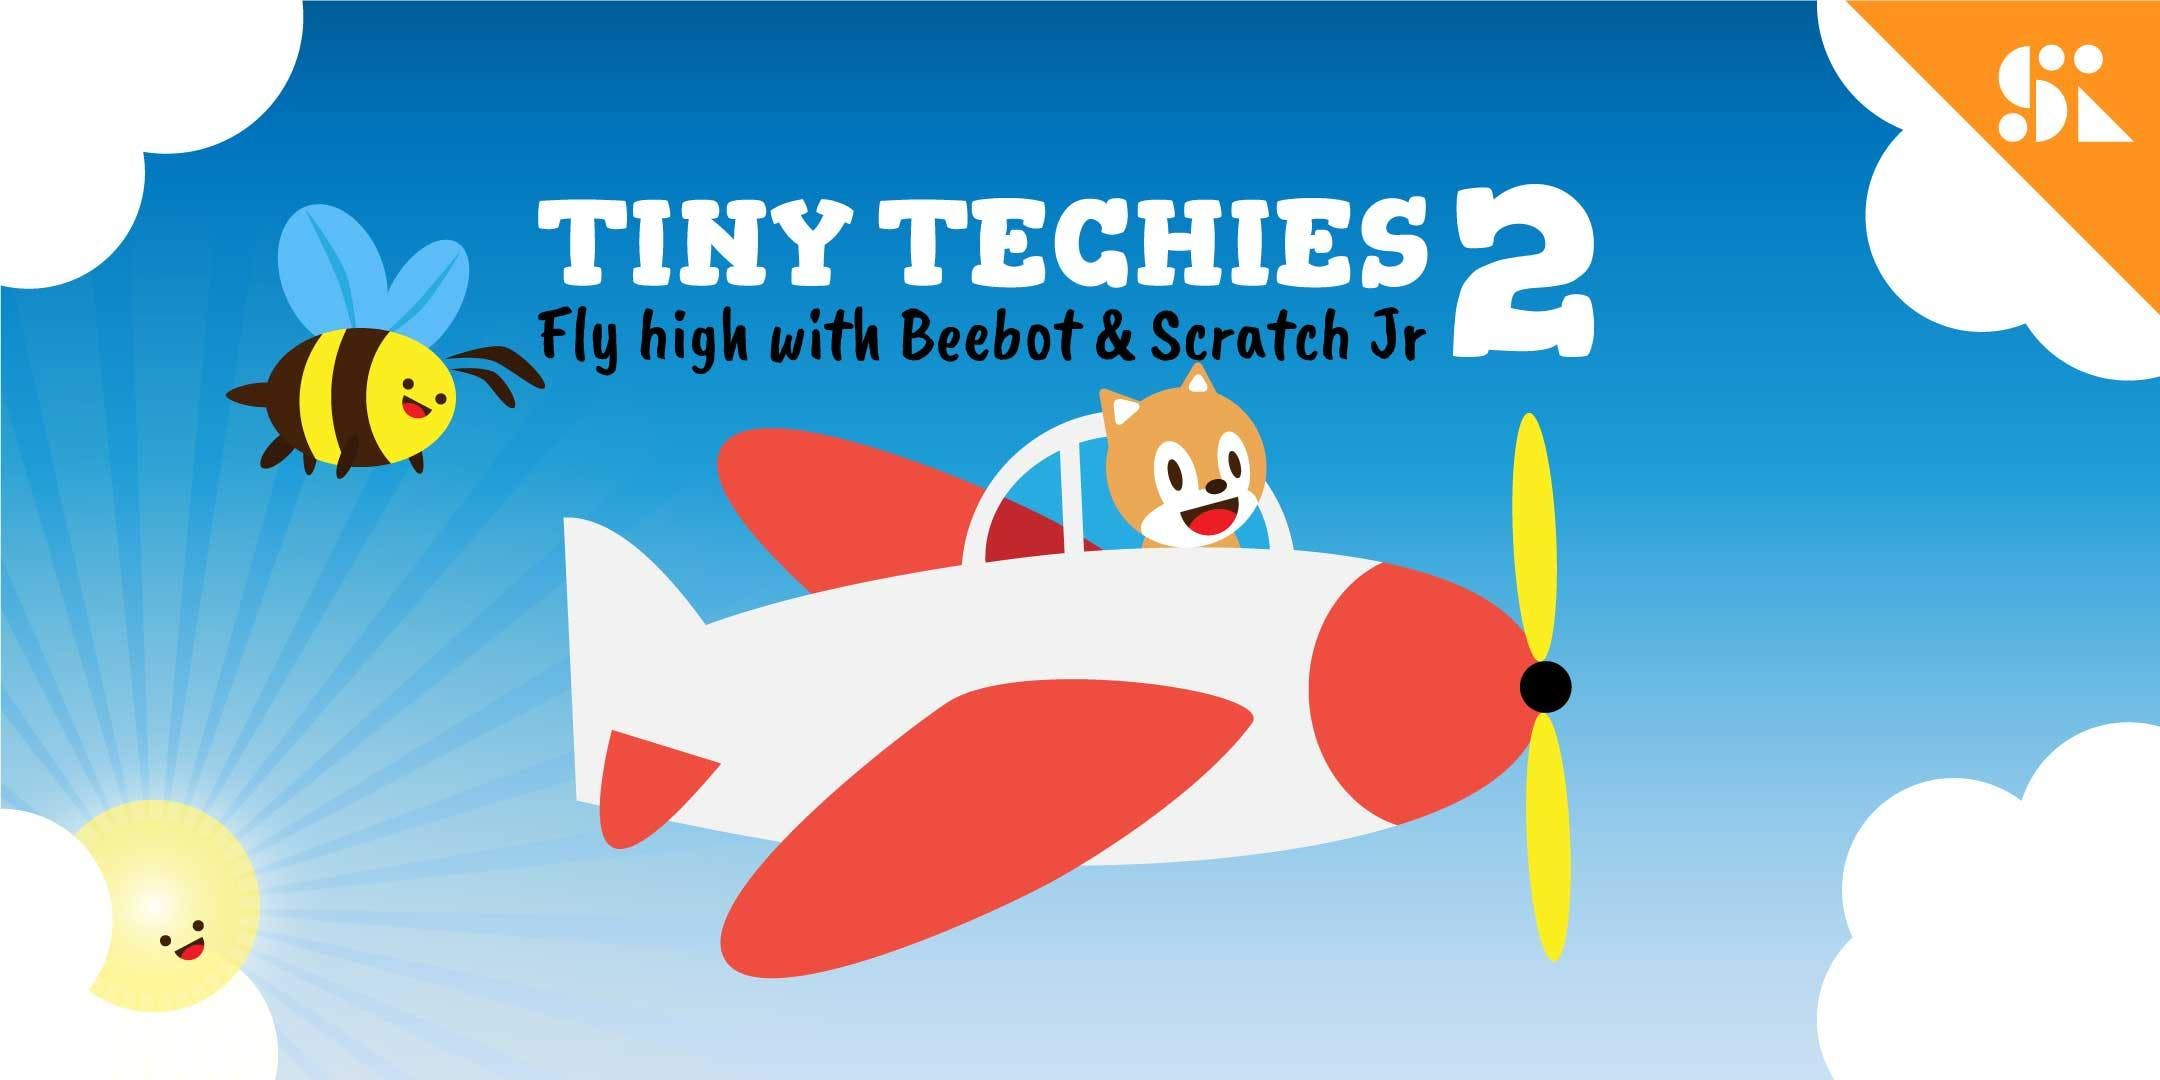 Tiny Techies 2 Fly High with Beebot & Scratch Junior [Ages 5-6] 7 Jul - 25 Aug (Sat 930AM)  Bukit Timah